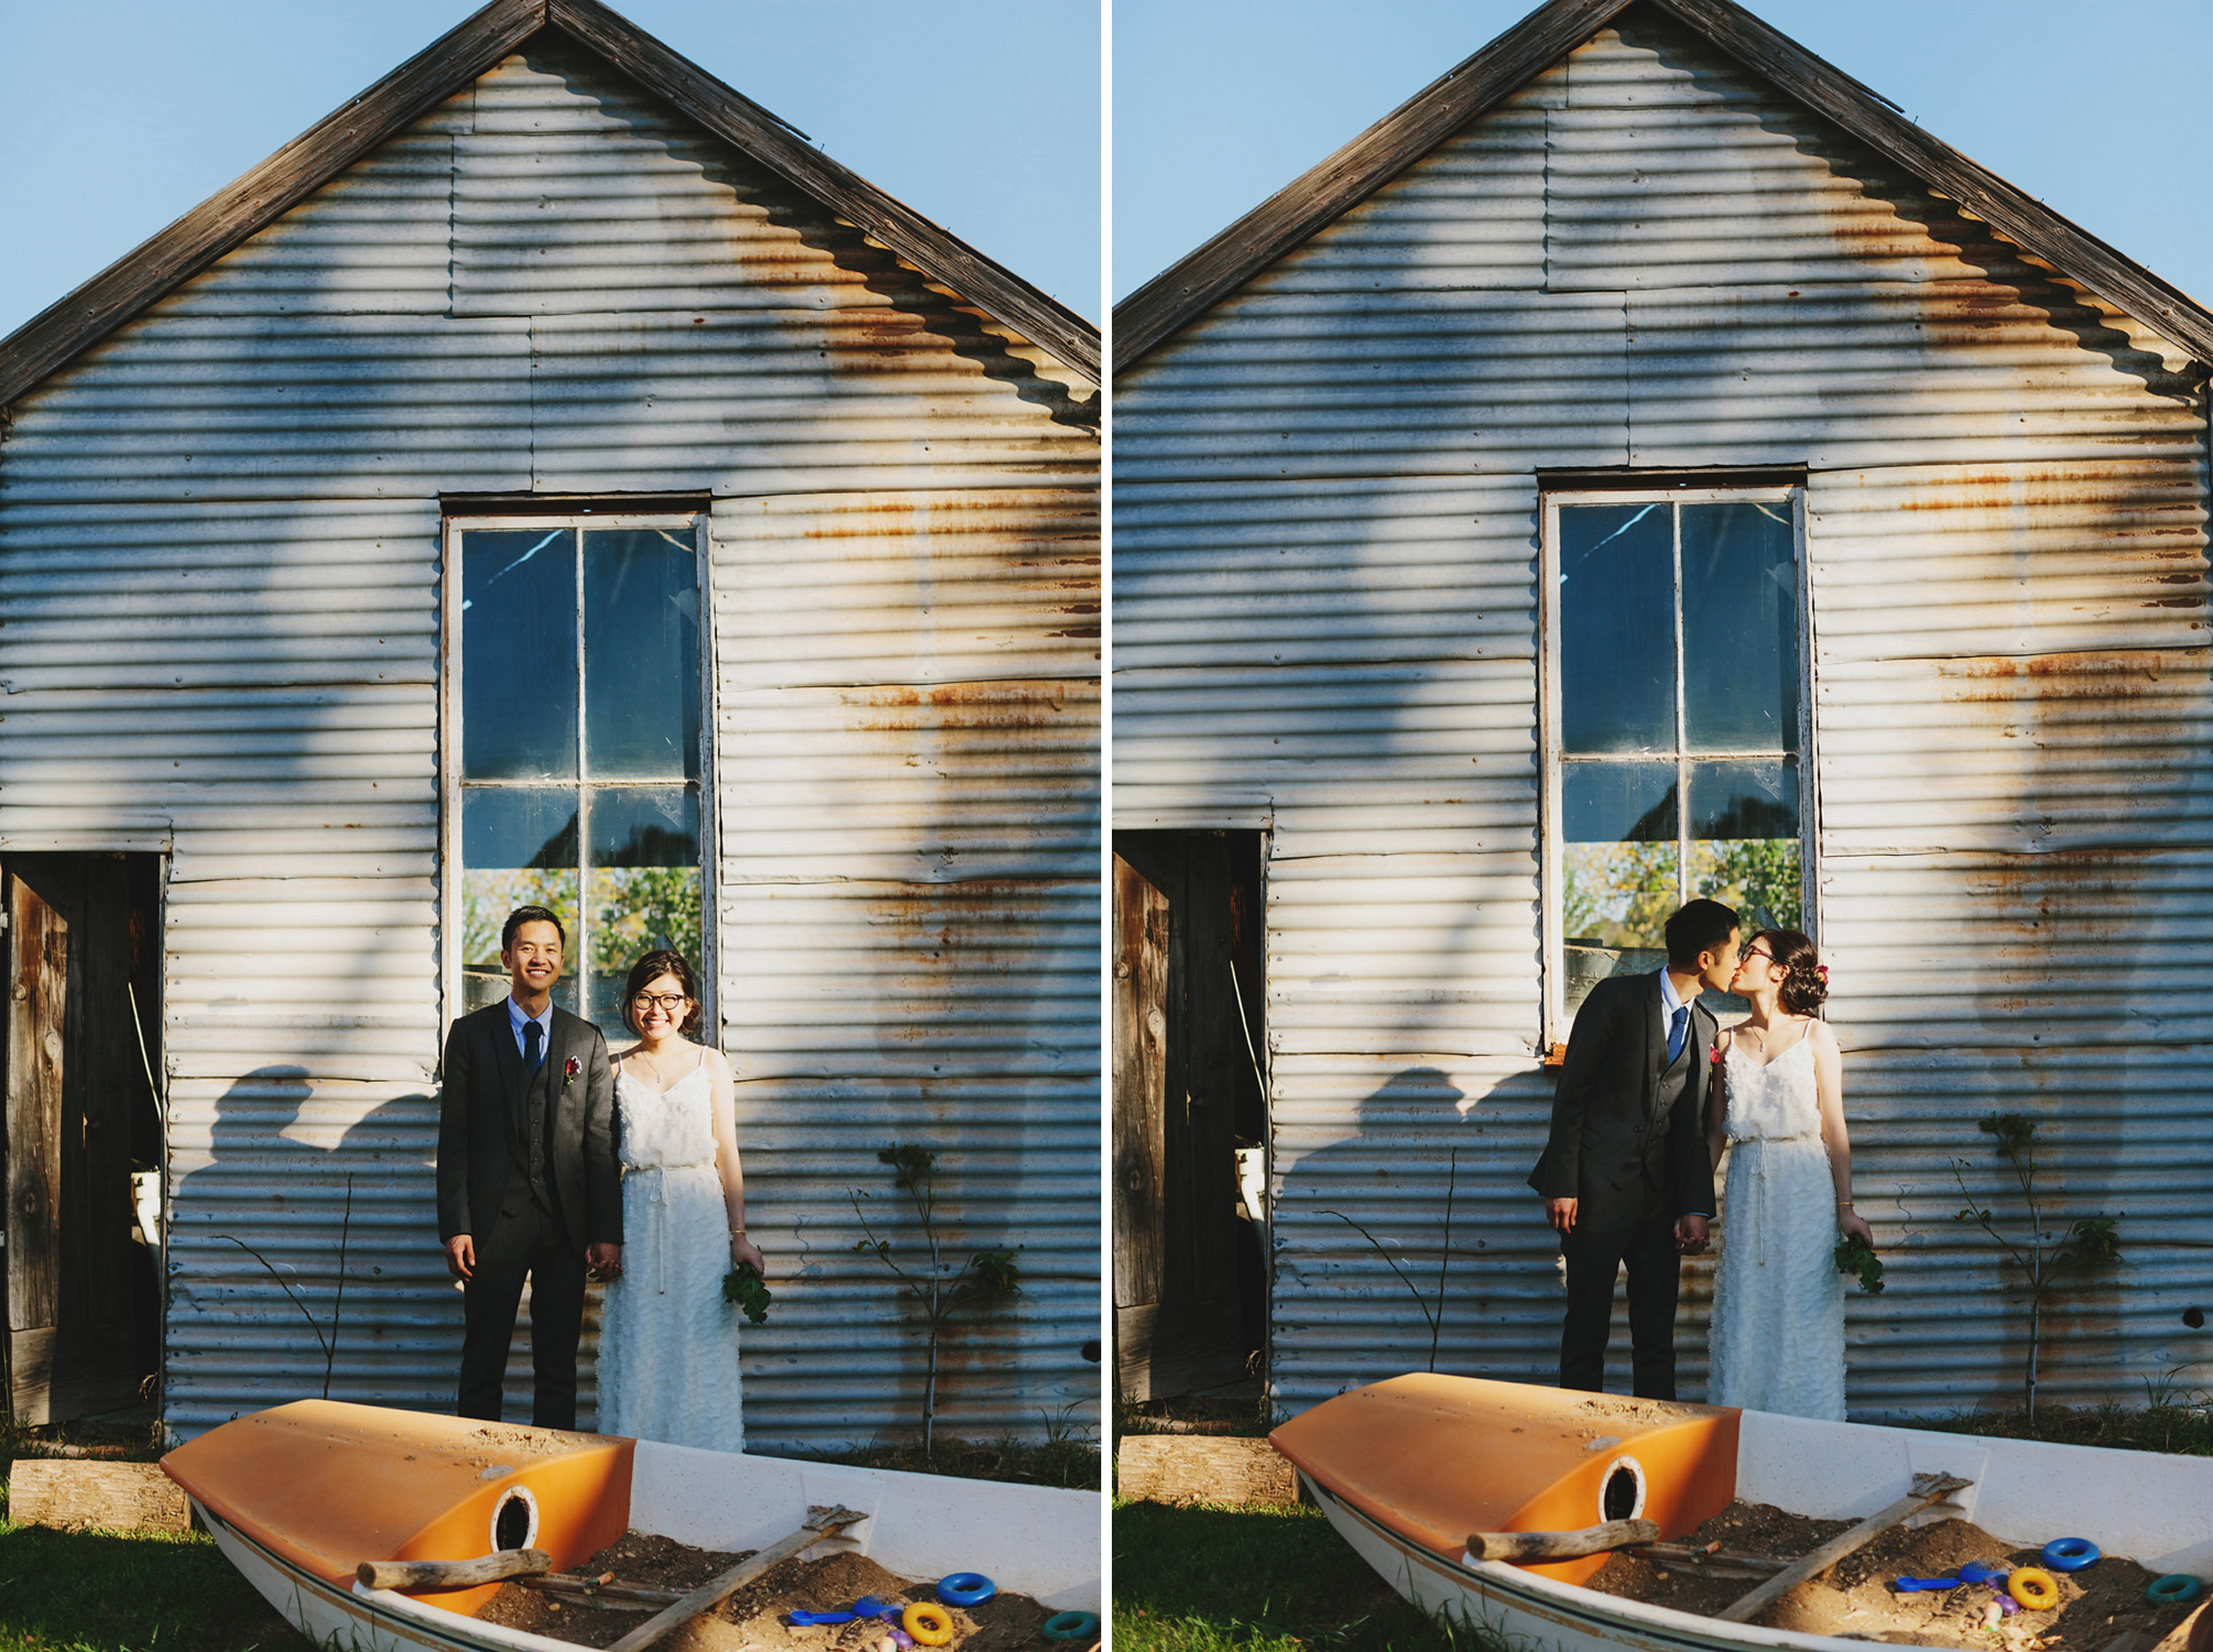 Butterland_Wedding_Anthony_Rachel81.JPG